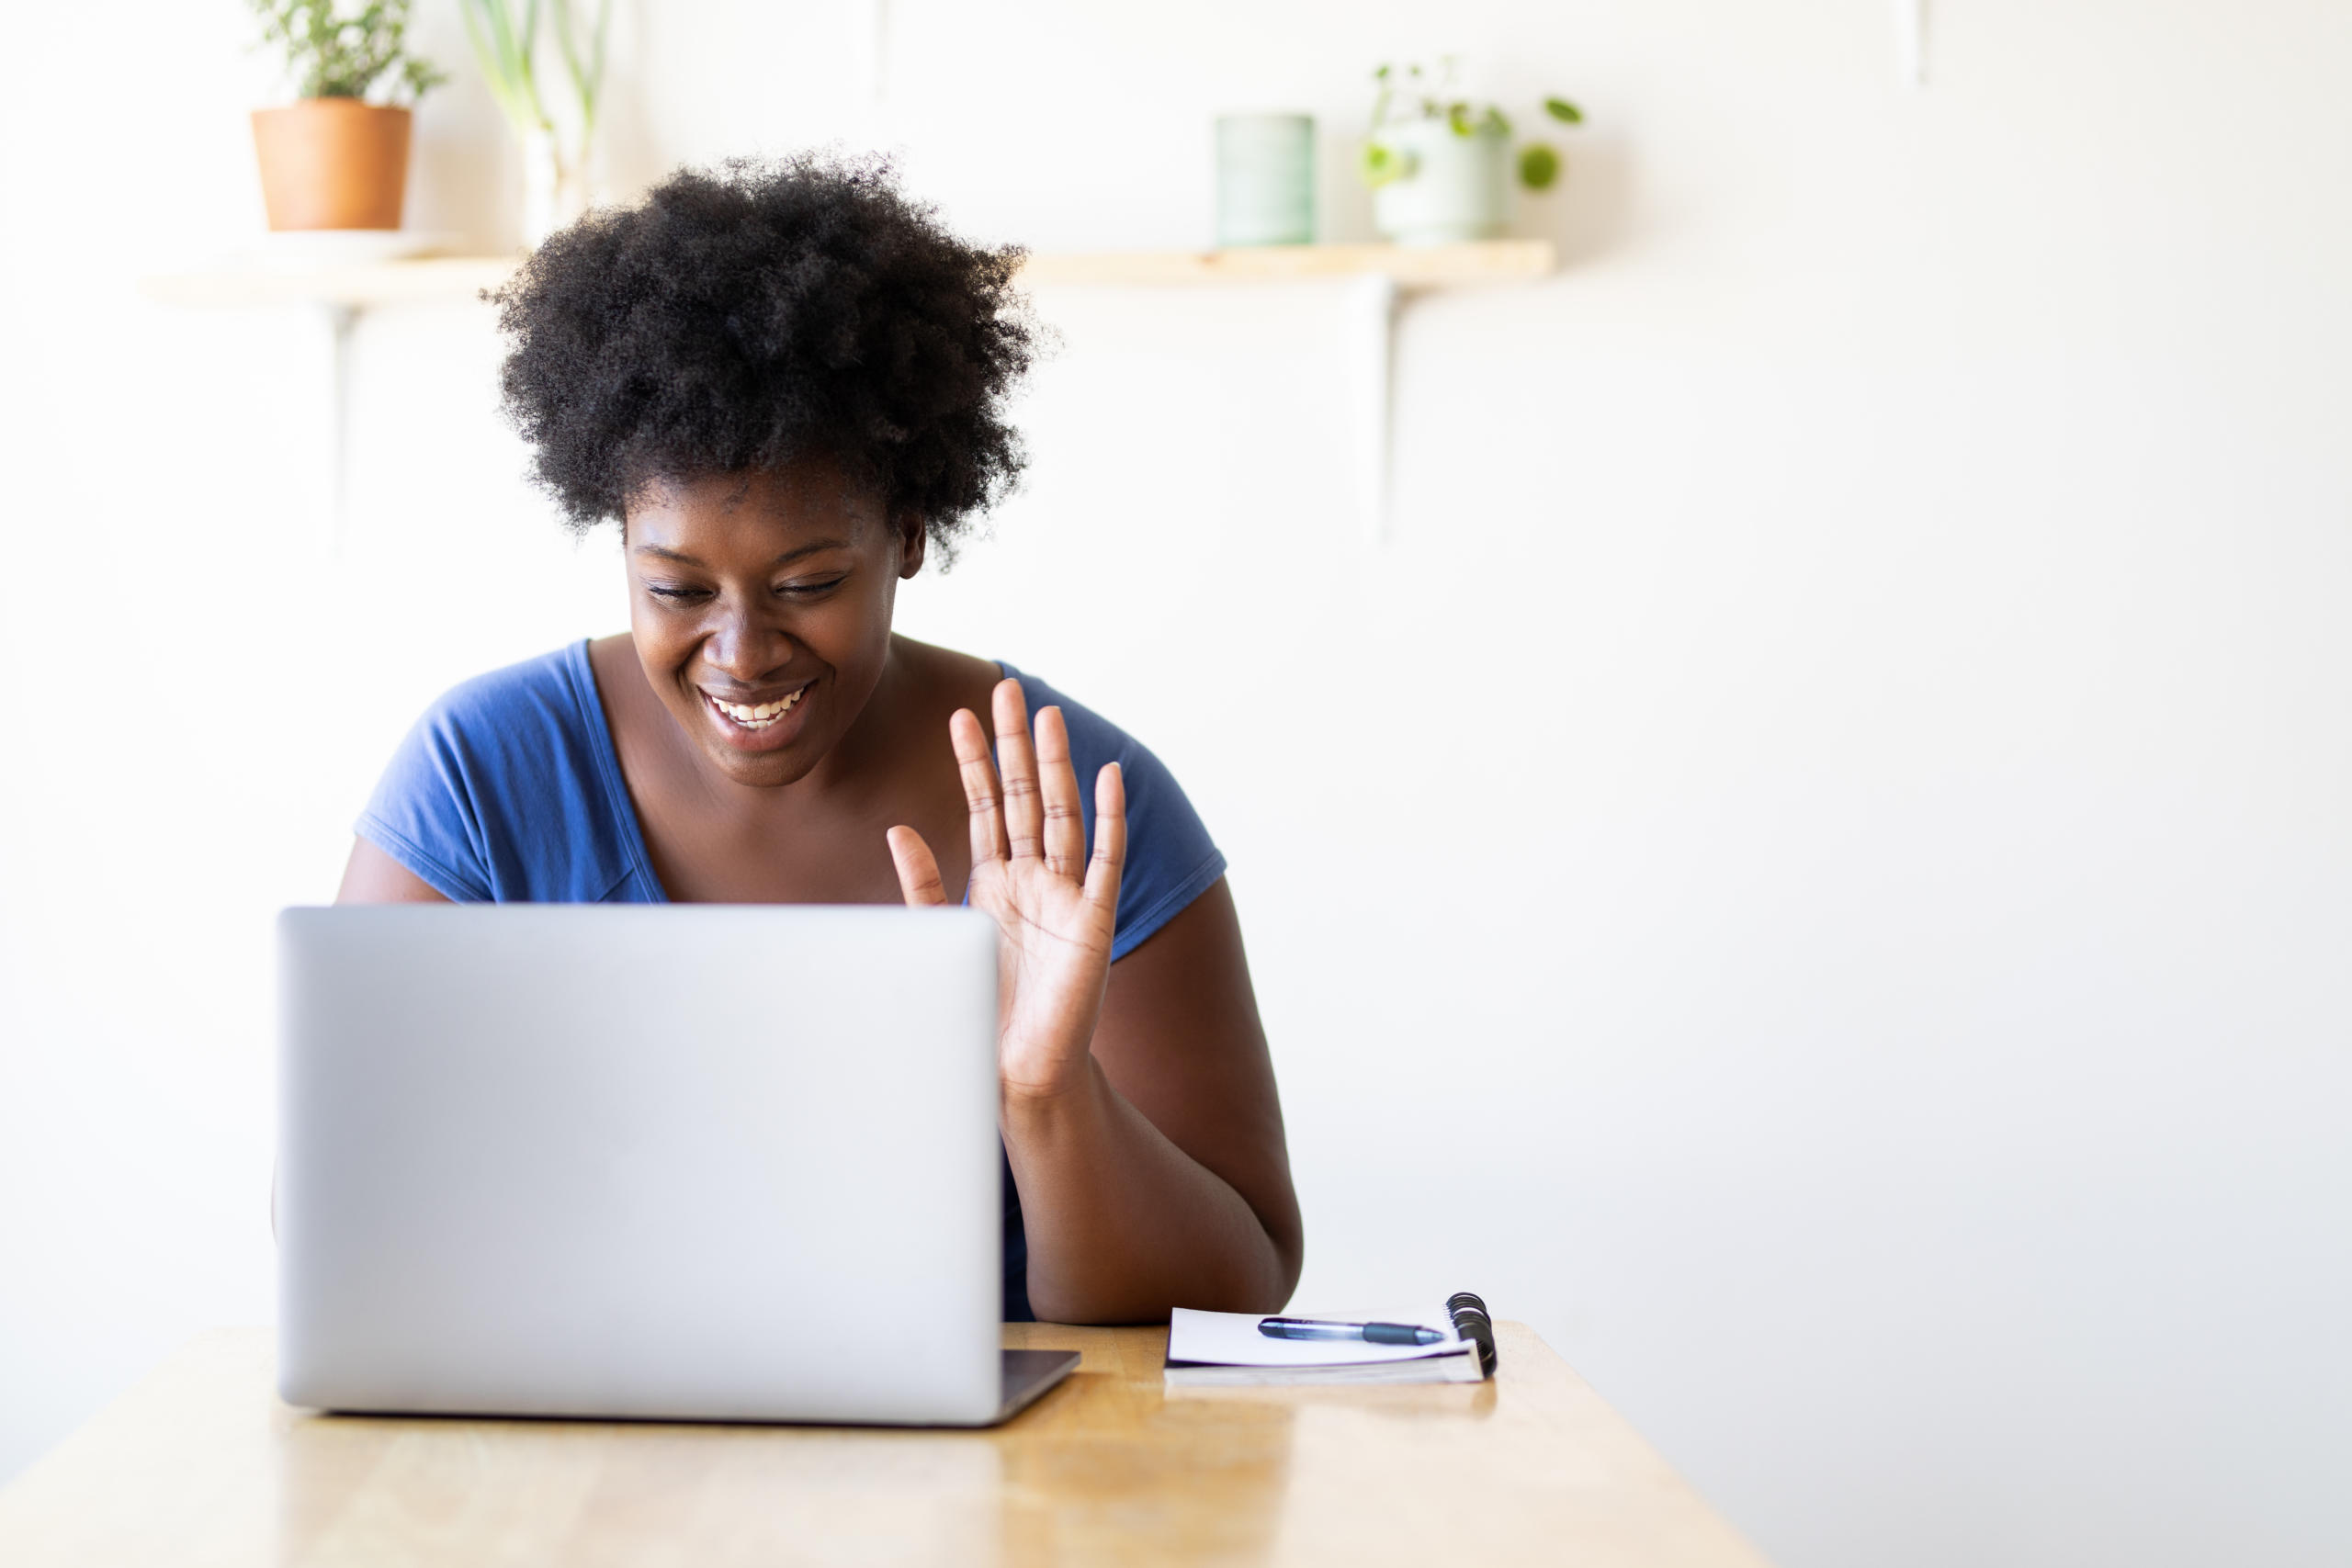 Woman at home having a virtual video call on her laptop.